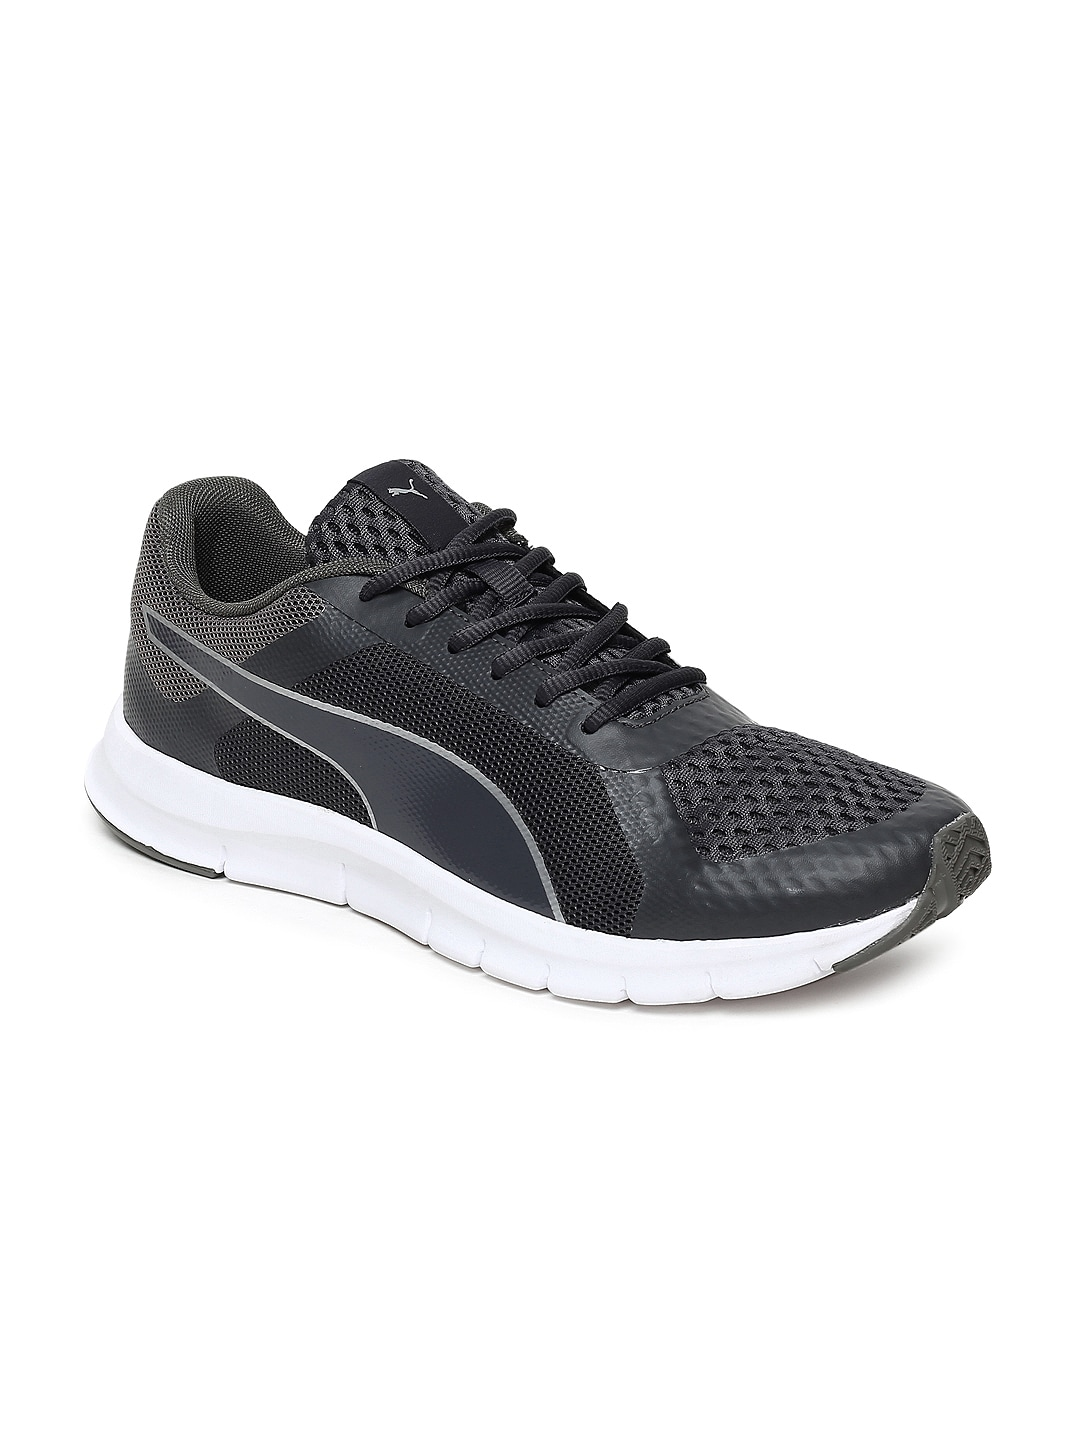 newest 5321d 83ba2 Puma Shoes - Buy Puma Shoes for Men   Women Online in India